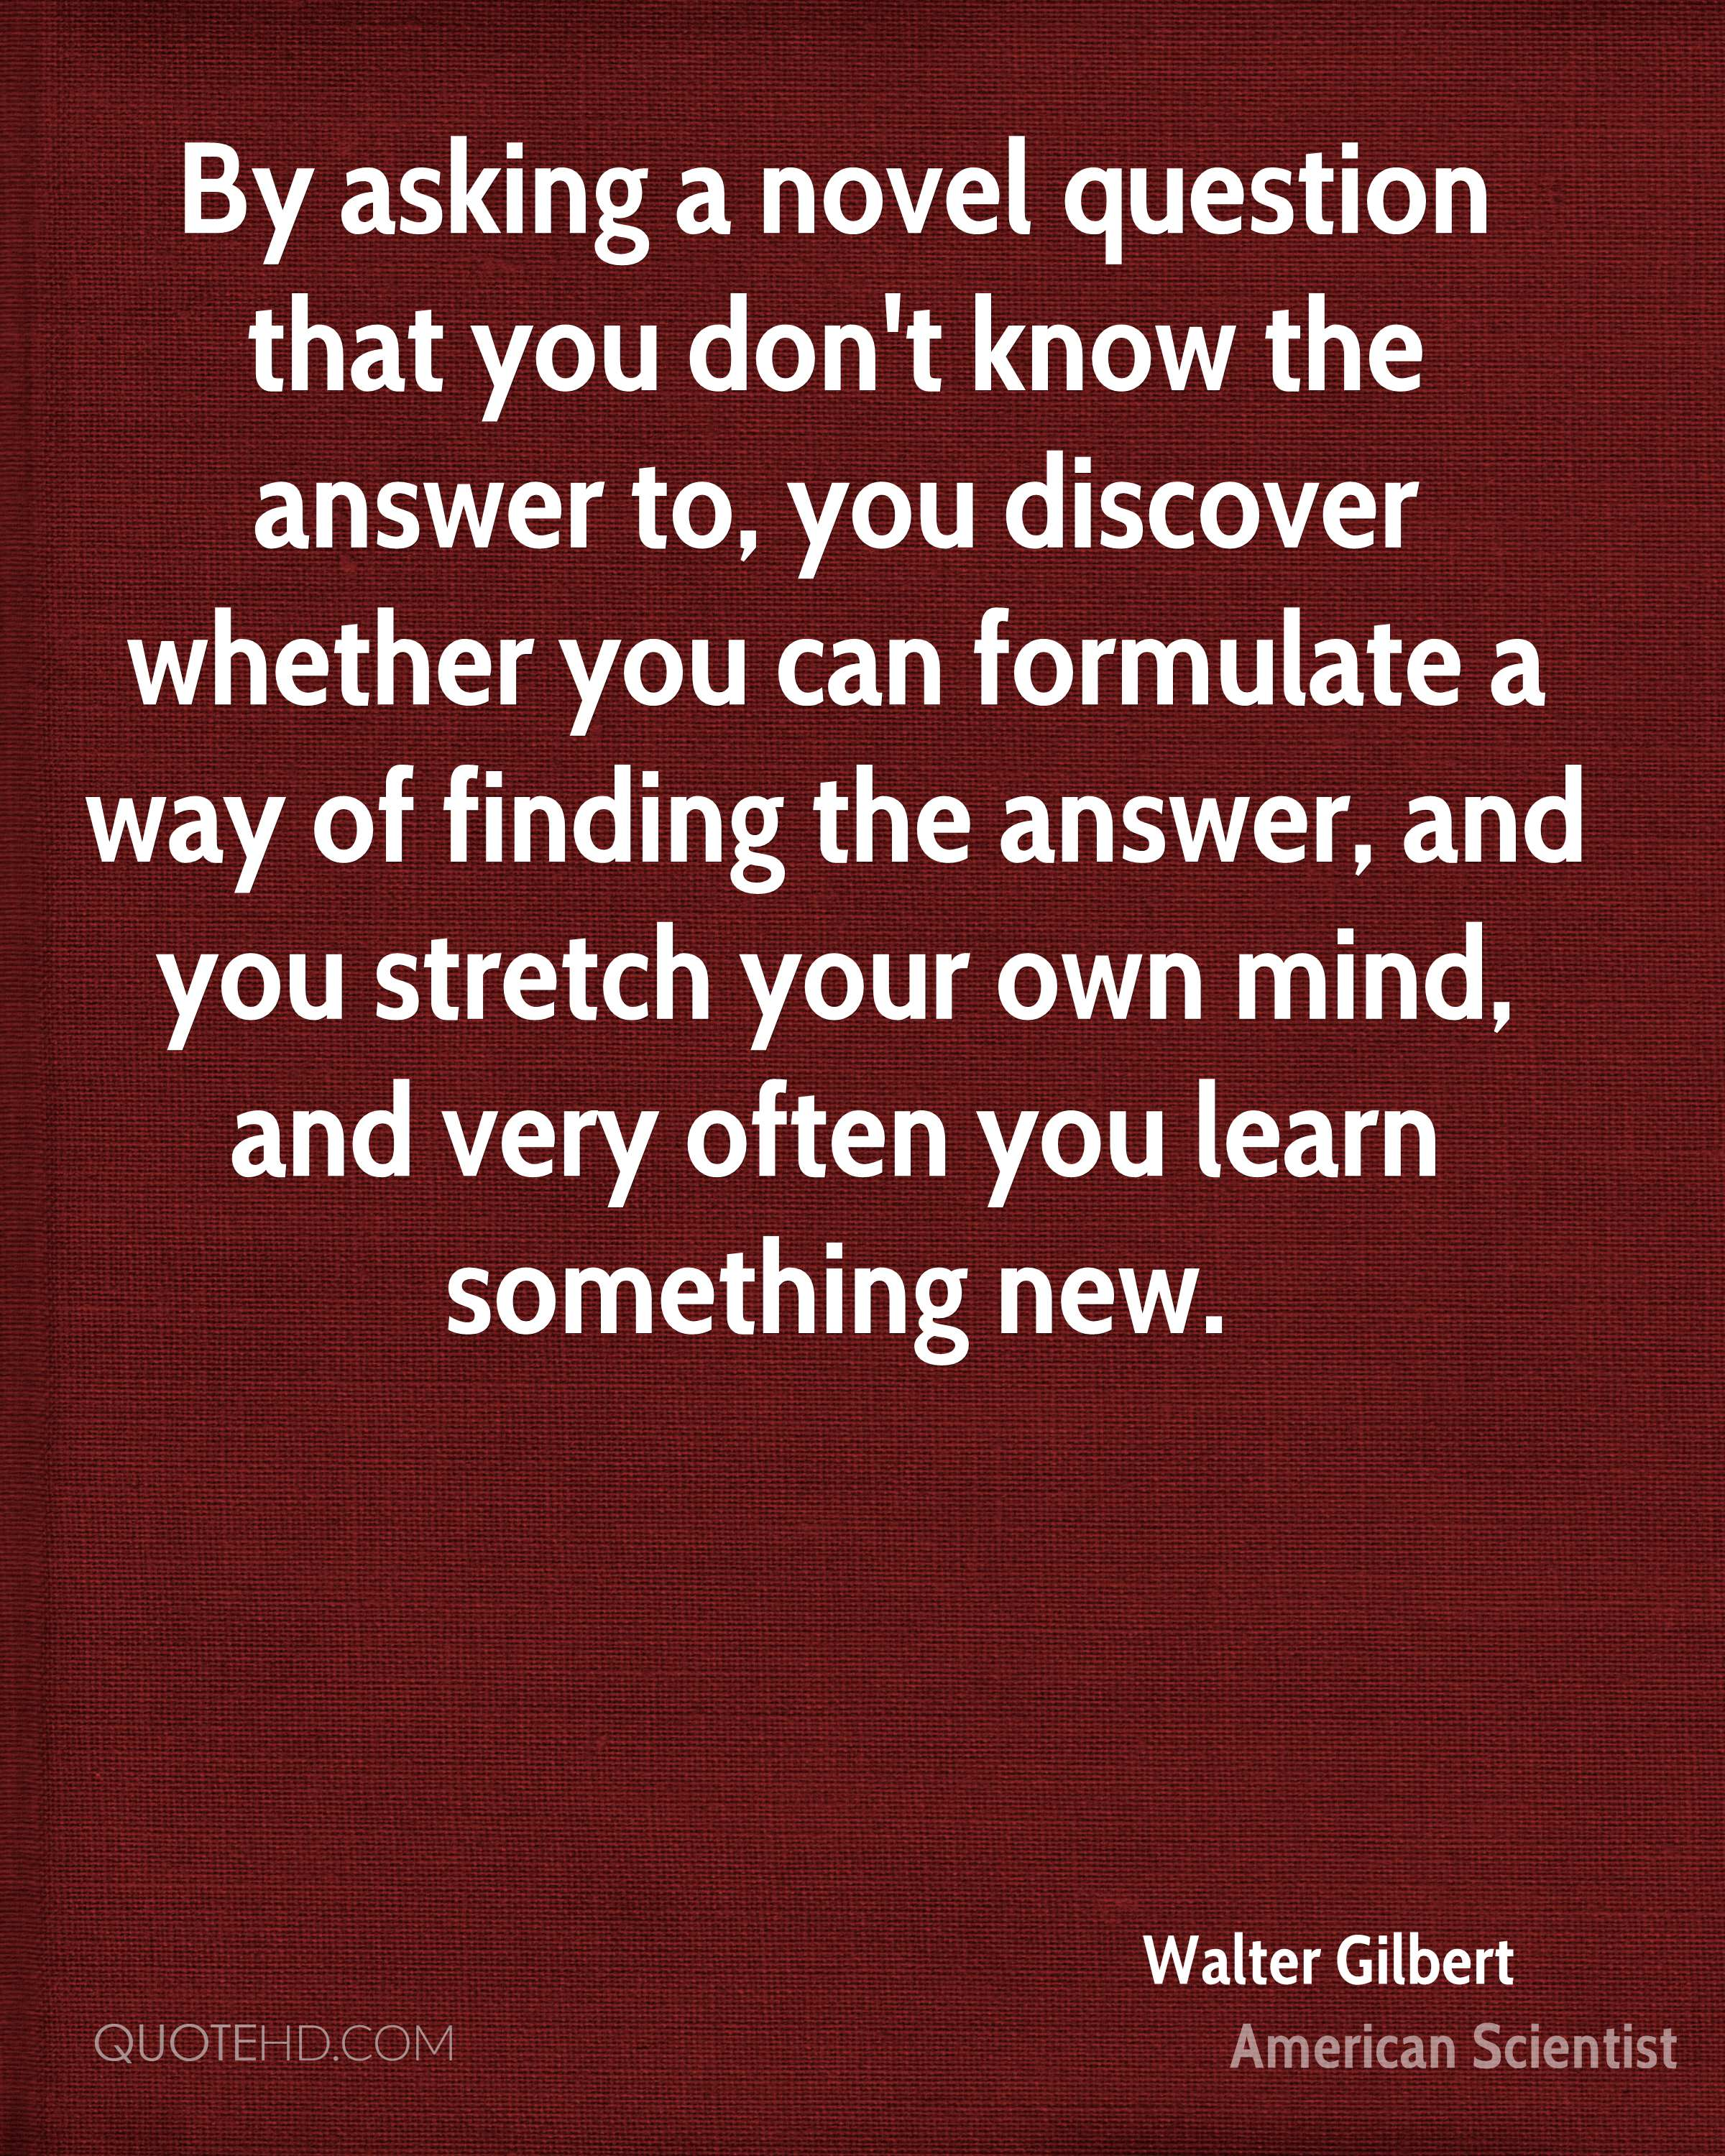 By asking a novel question that you don't know the answer to, you discover whether you can formulate a way of finding the answer, and you stretch your own mind, and very often you learn something new.